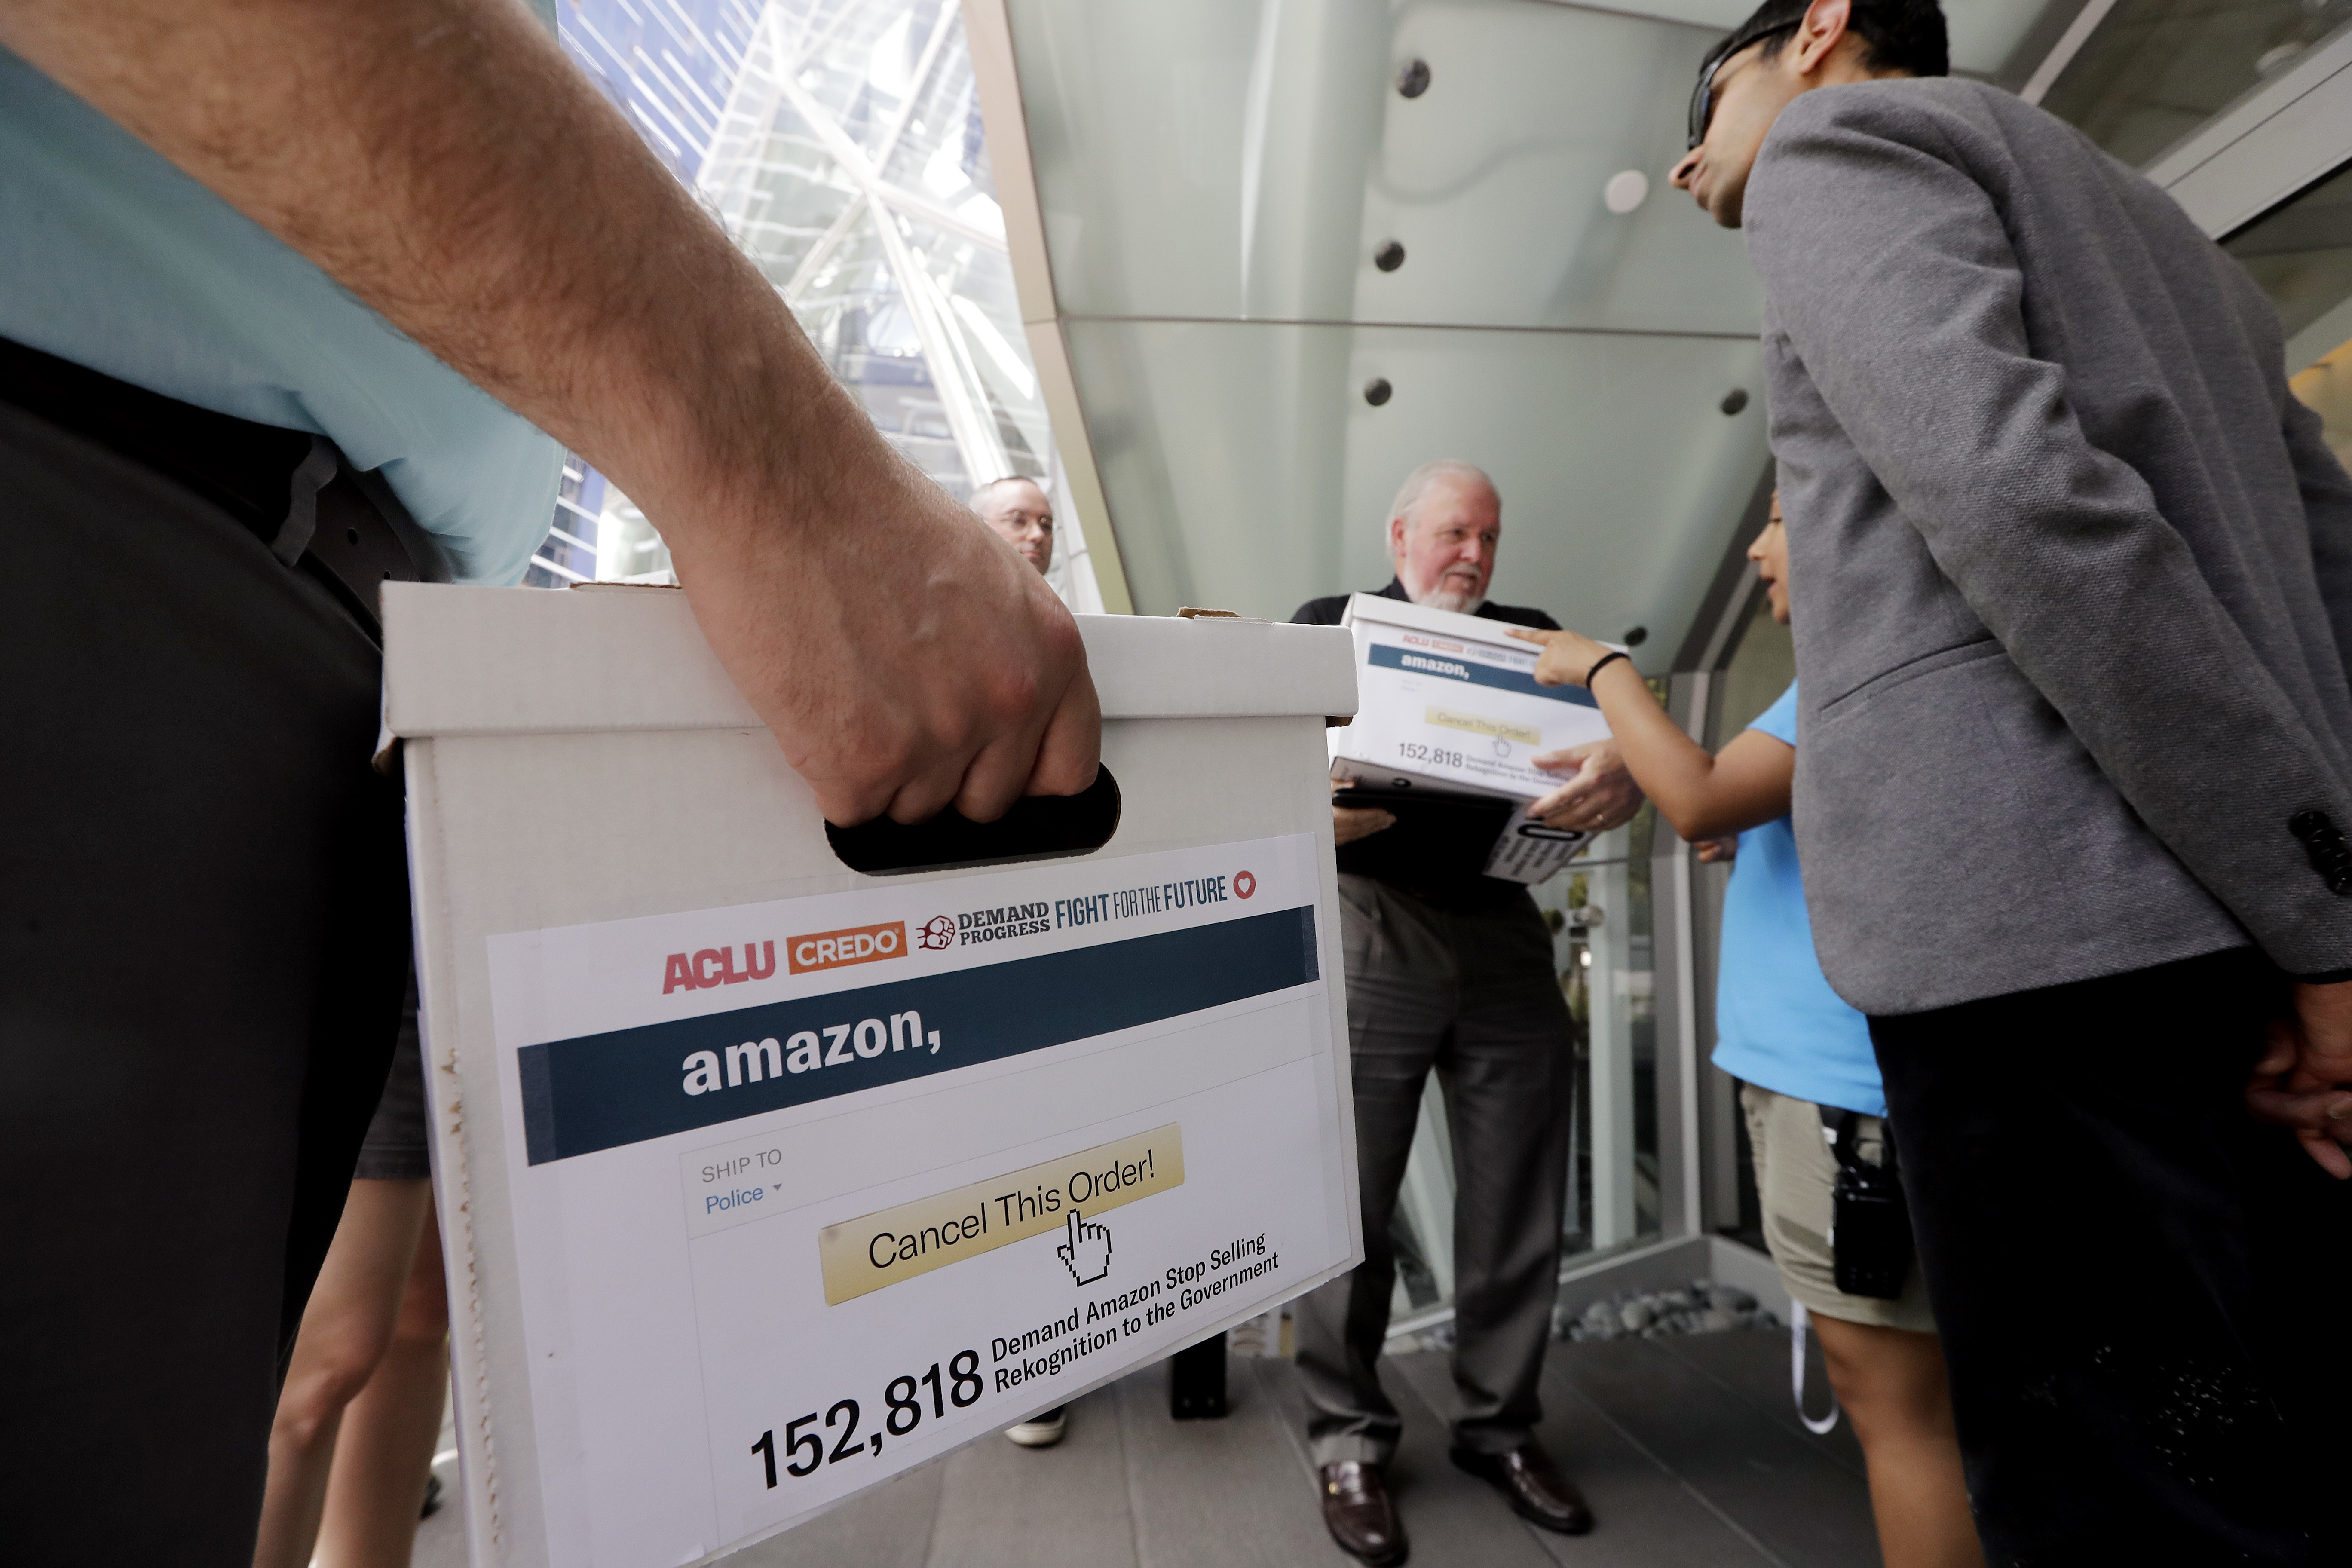 Rev. Paul Benz, center, and Shankar Narayan, legislative director of the ACLU of Washington, right, stand with others as they wait to deliver petitions at Amazon headquarters, June 18, 2018, in Seattle. Representatives of community-based organizations urged Amazon at a news conference to stop selling its face surveillance system, Rekognition, to the government. They later delivered the petitions to Amazon. Elaine Thompson | AP